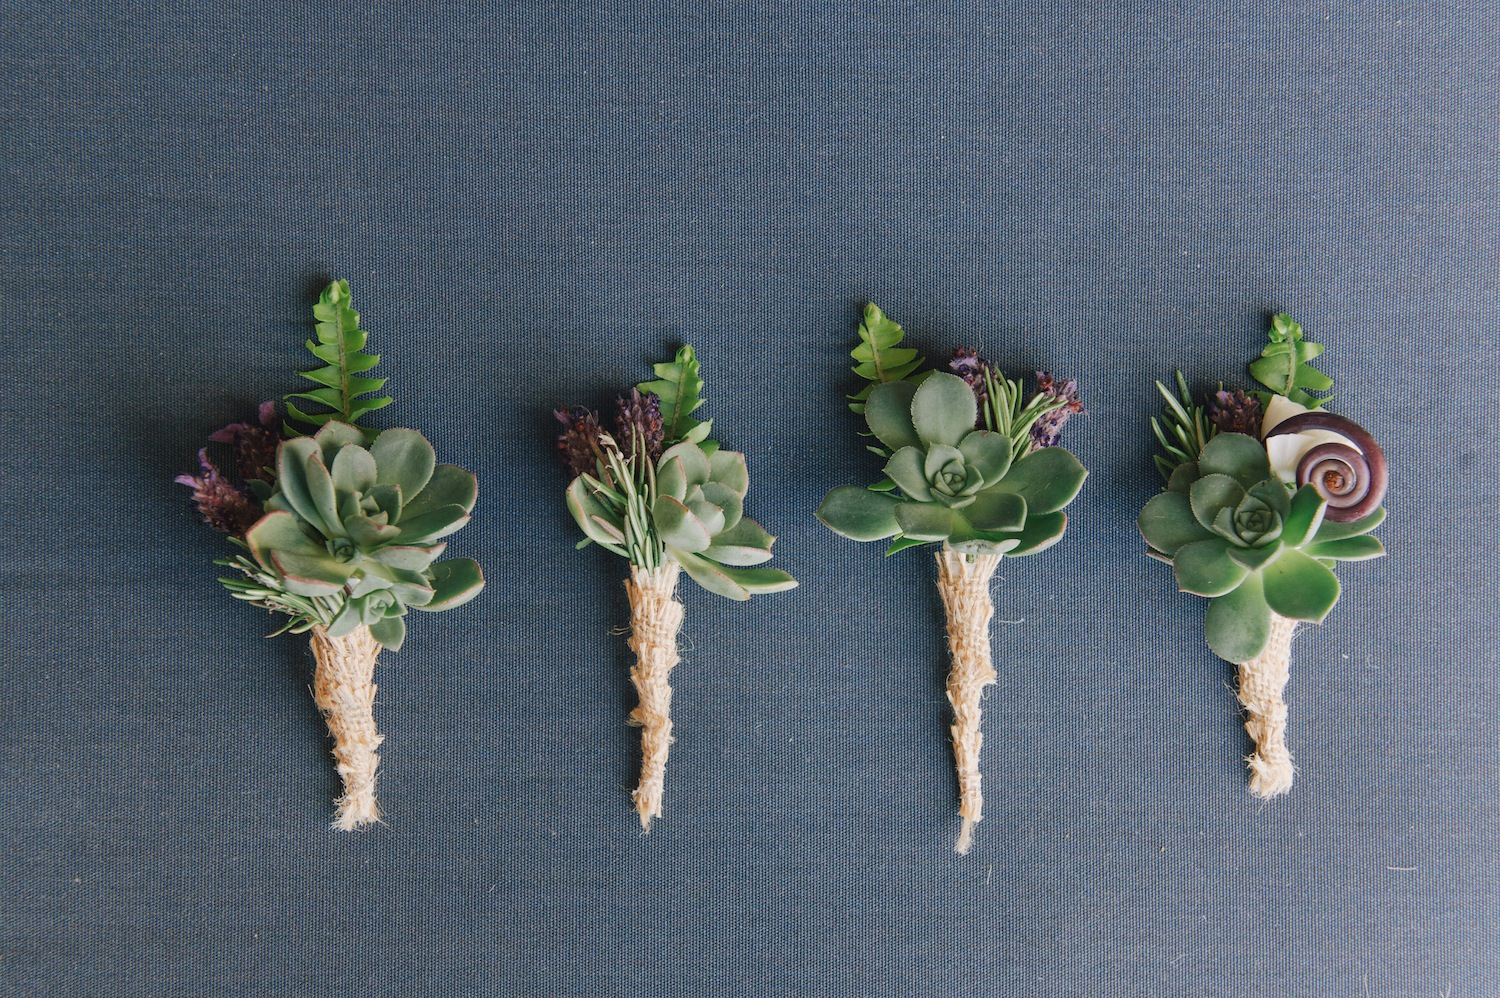 succulent boutonnieres for groom and groomsmen at wedding